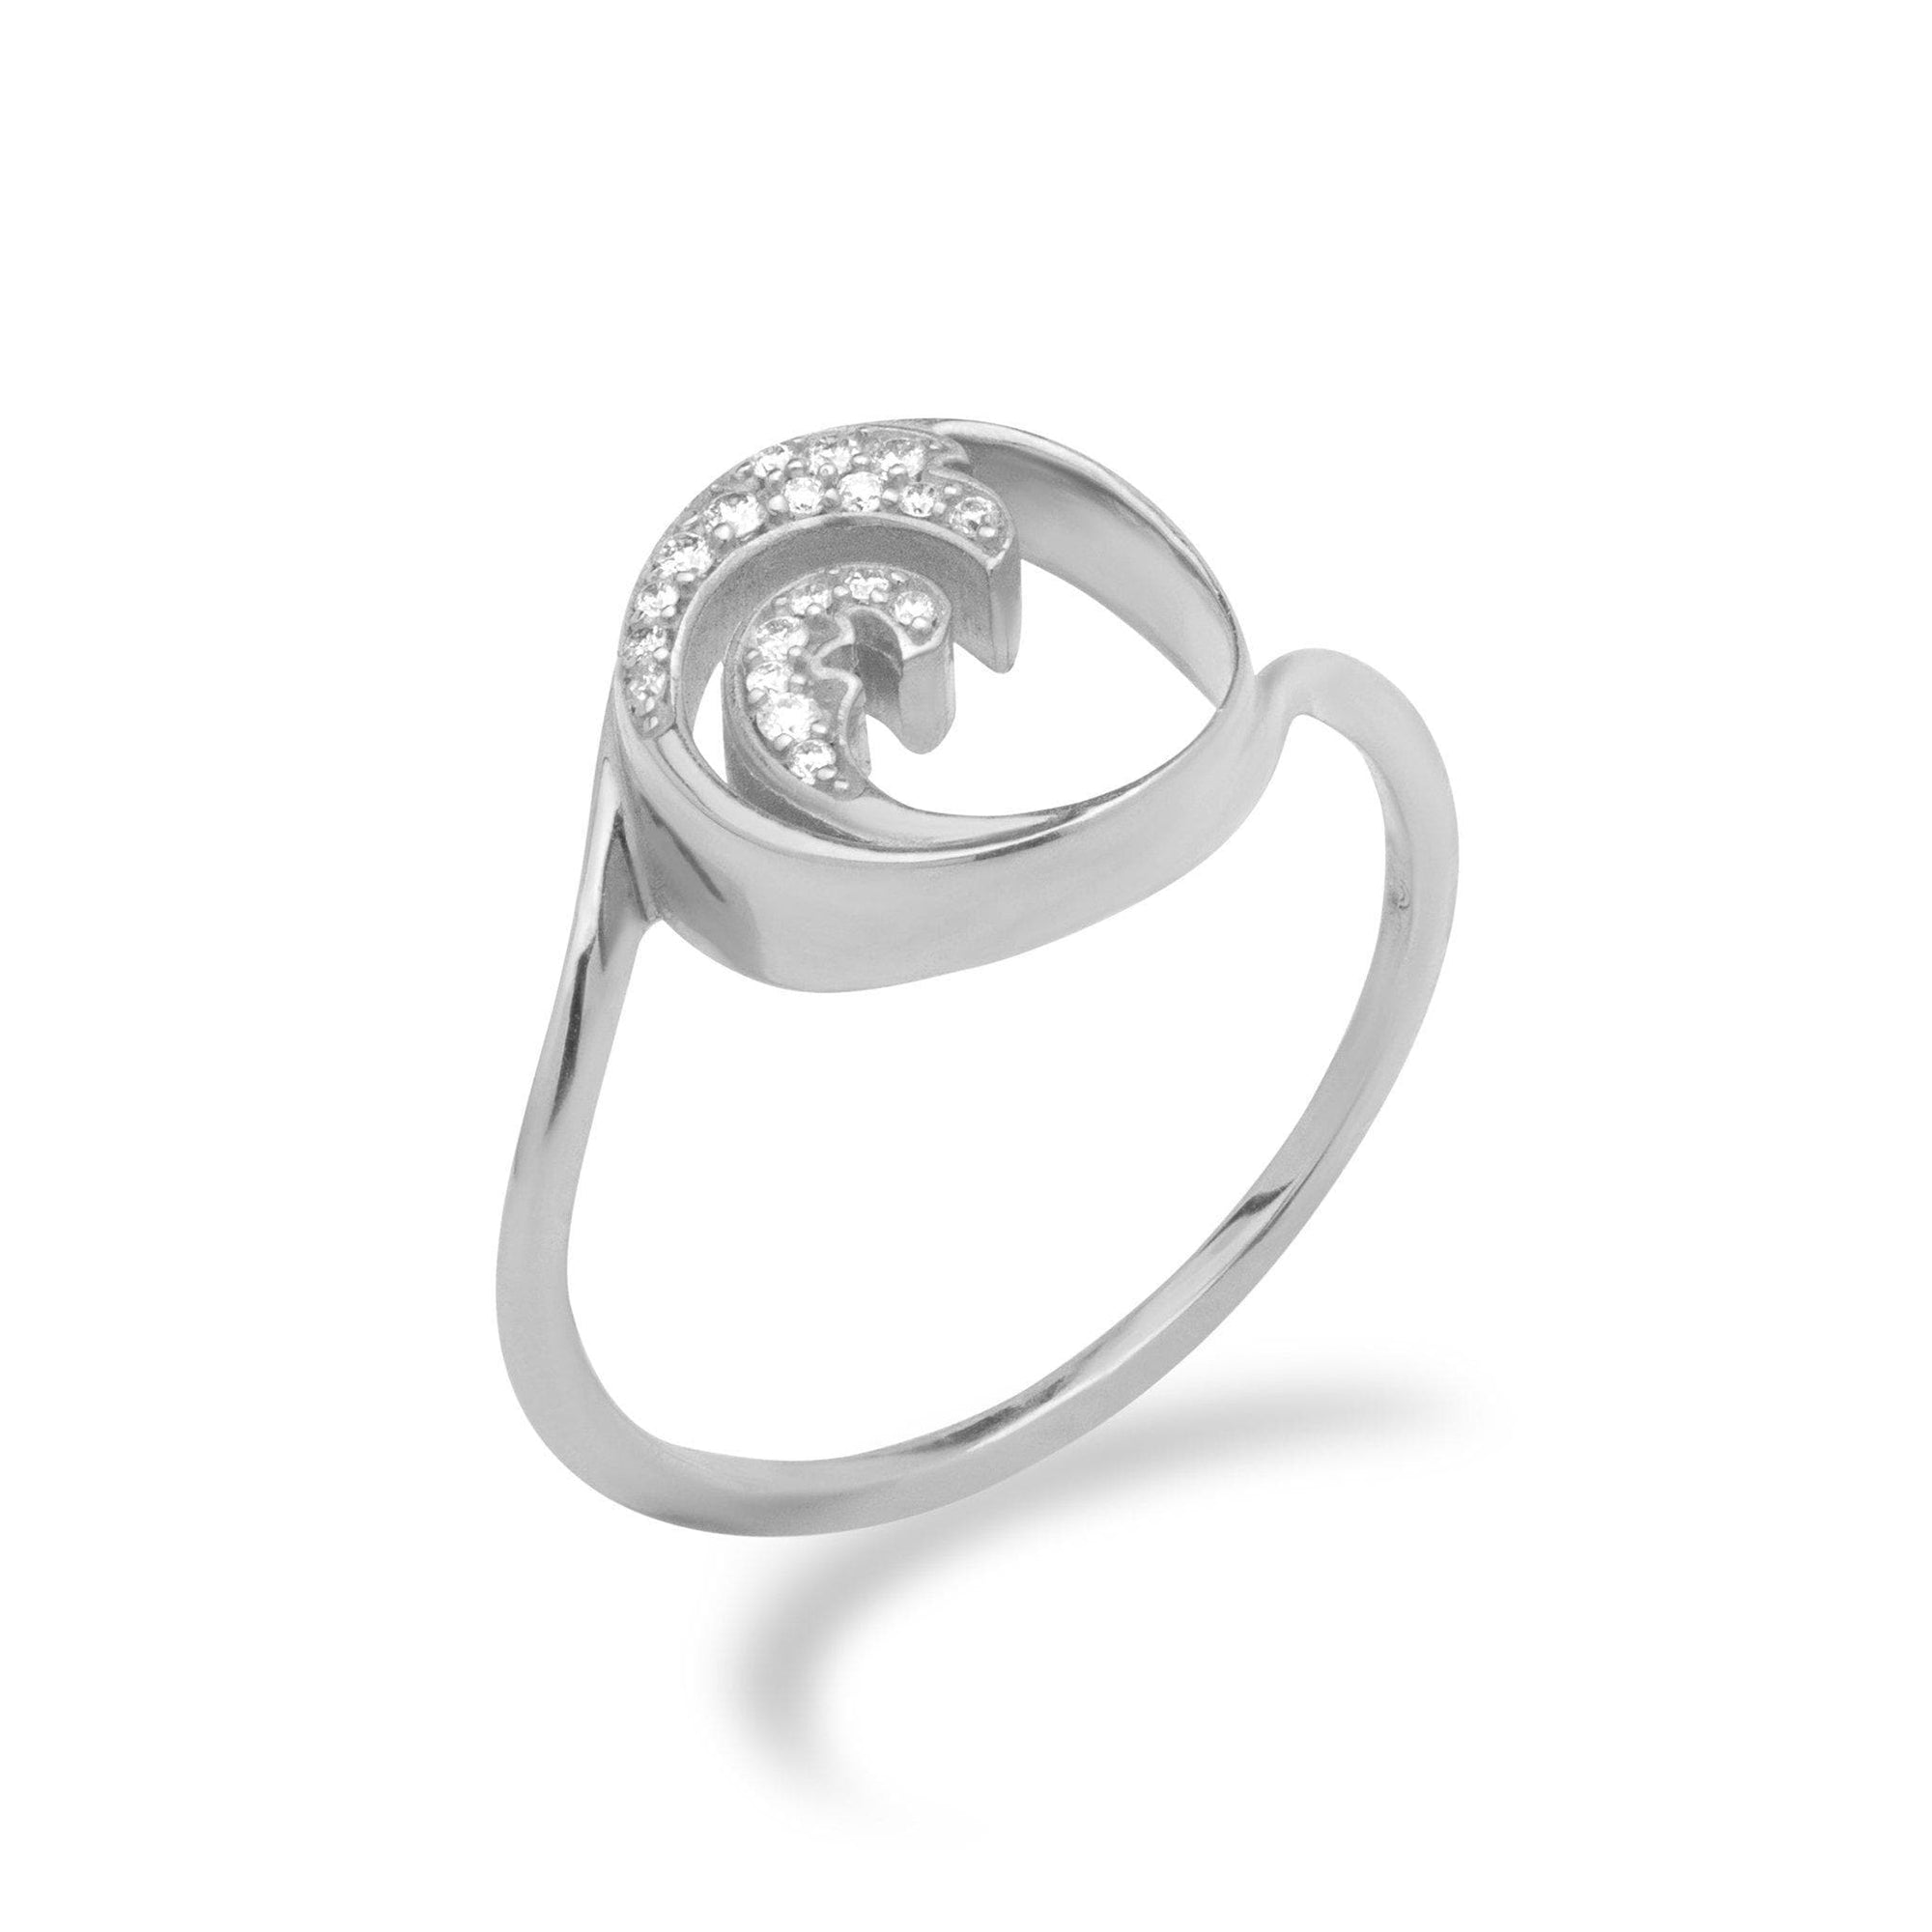 Nalu Ring in White Gold with Diamonds - 12mm-[SKU]